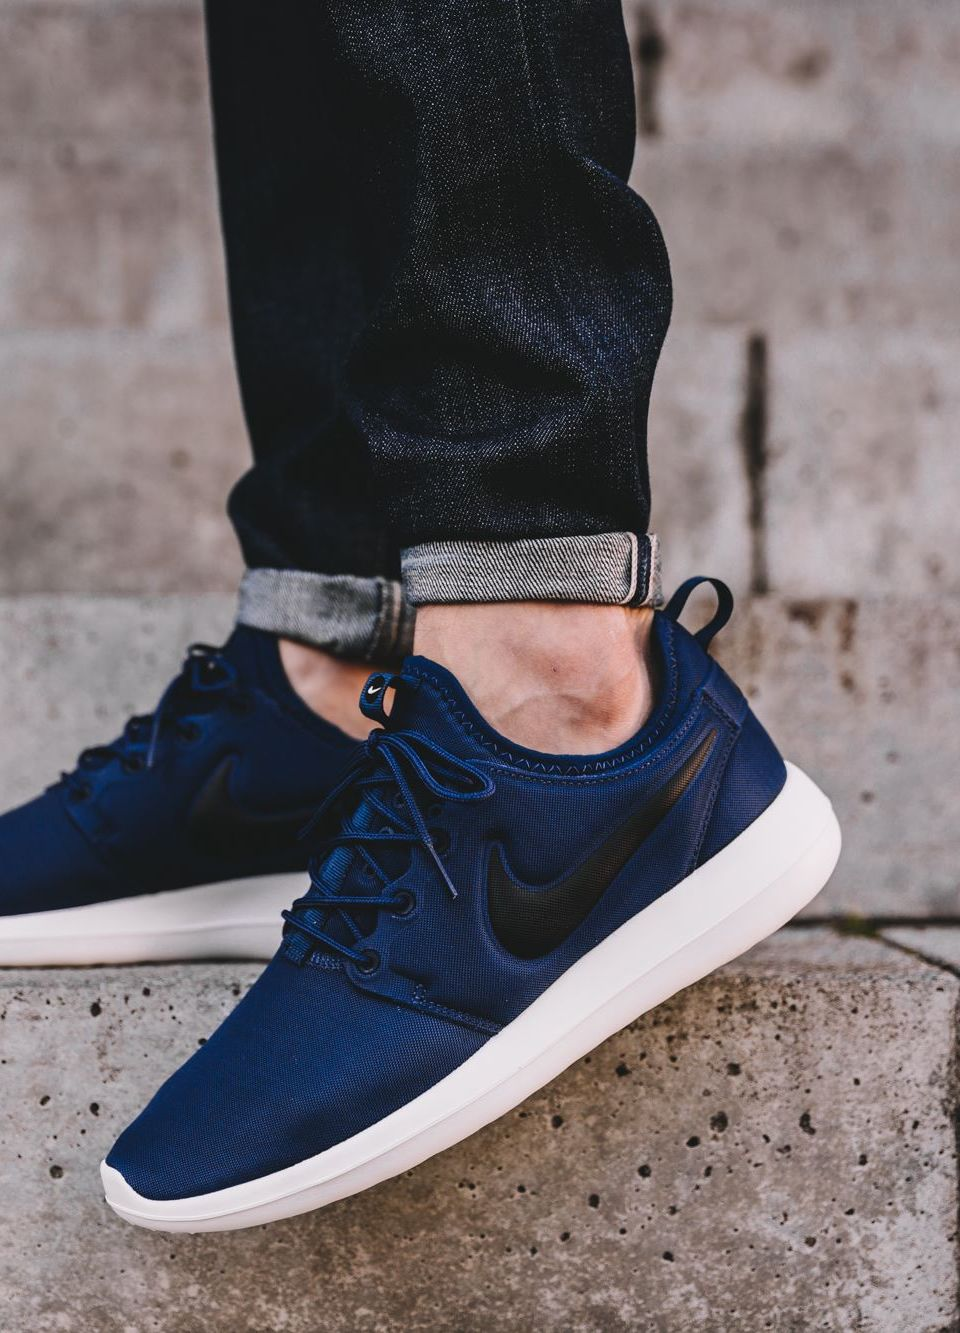 0d81295ec25d6 Nike Roshe Two Midnight Navy  sneakernews  Sneakers  StreetStyle  Kicks